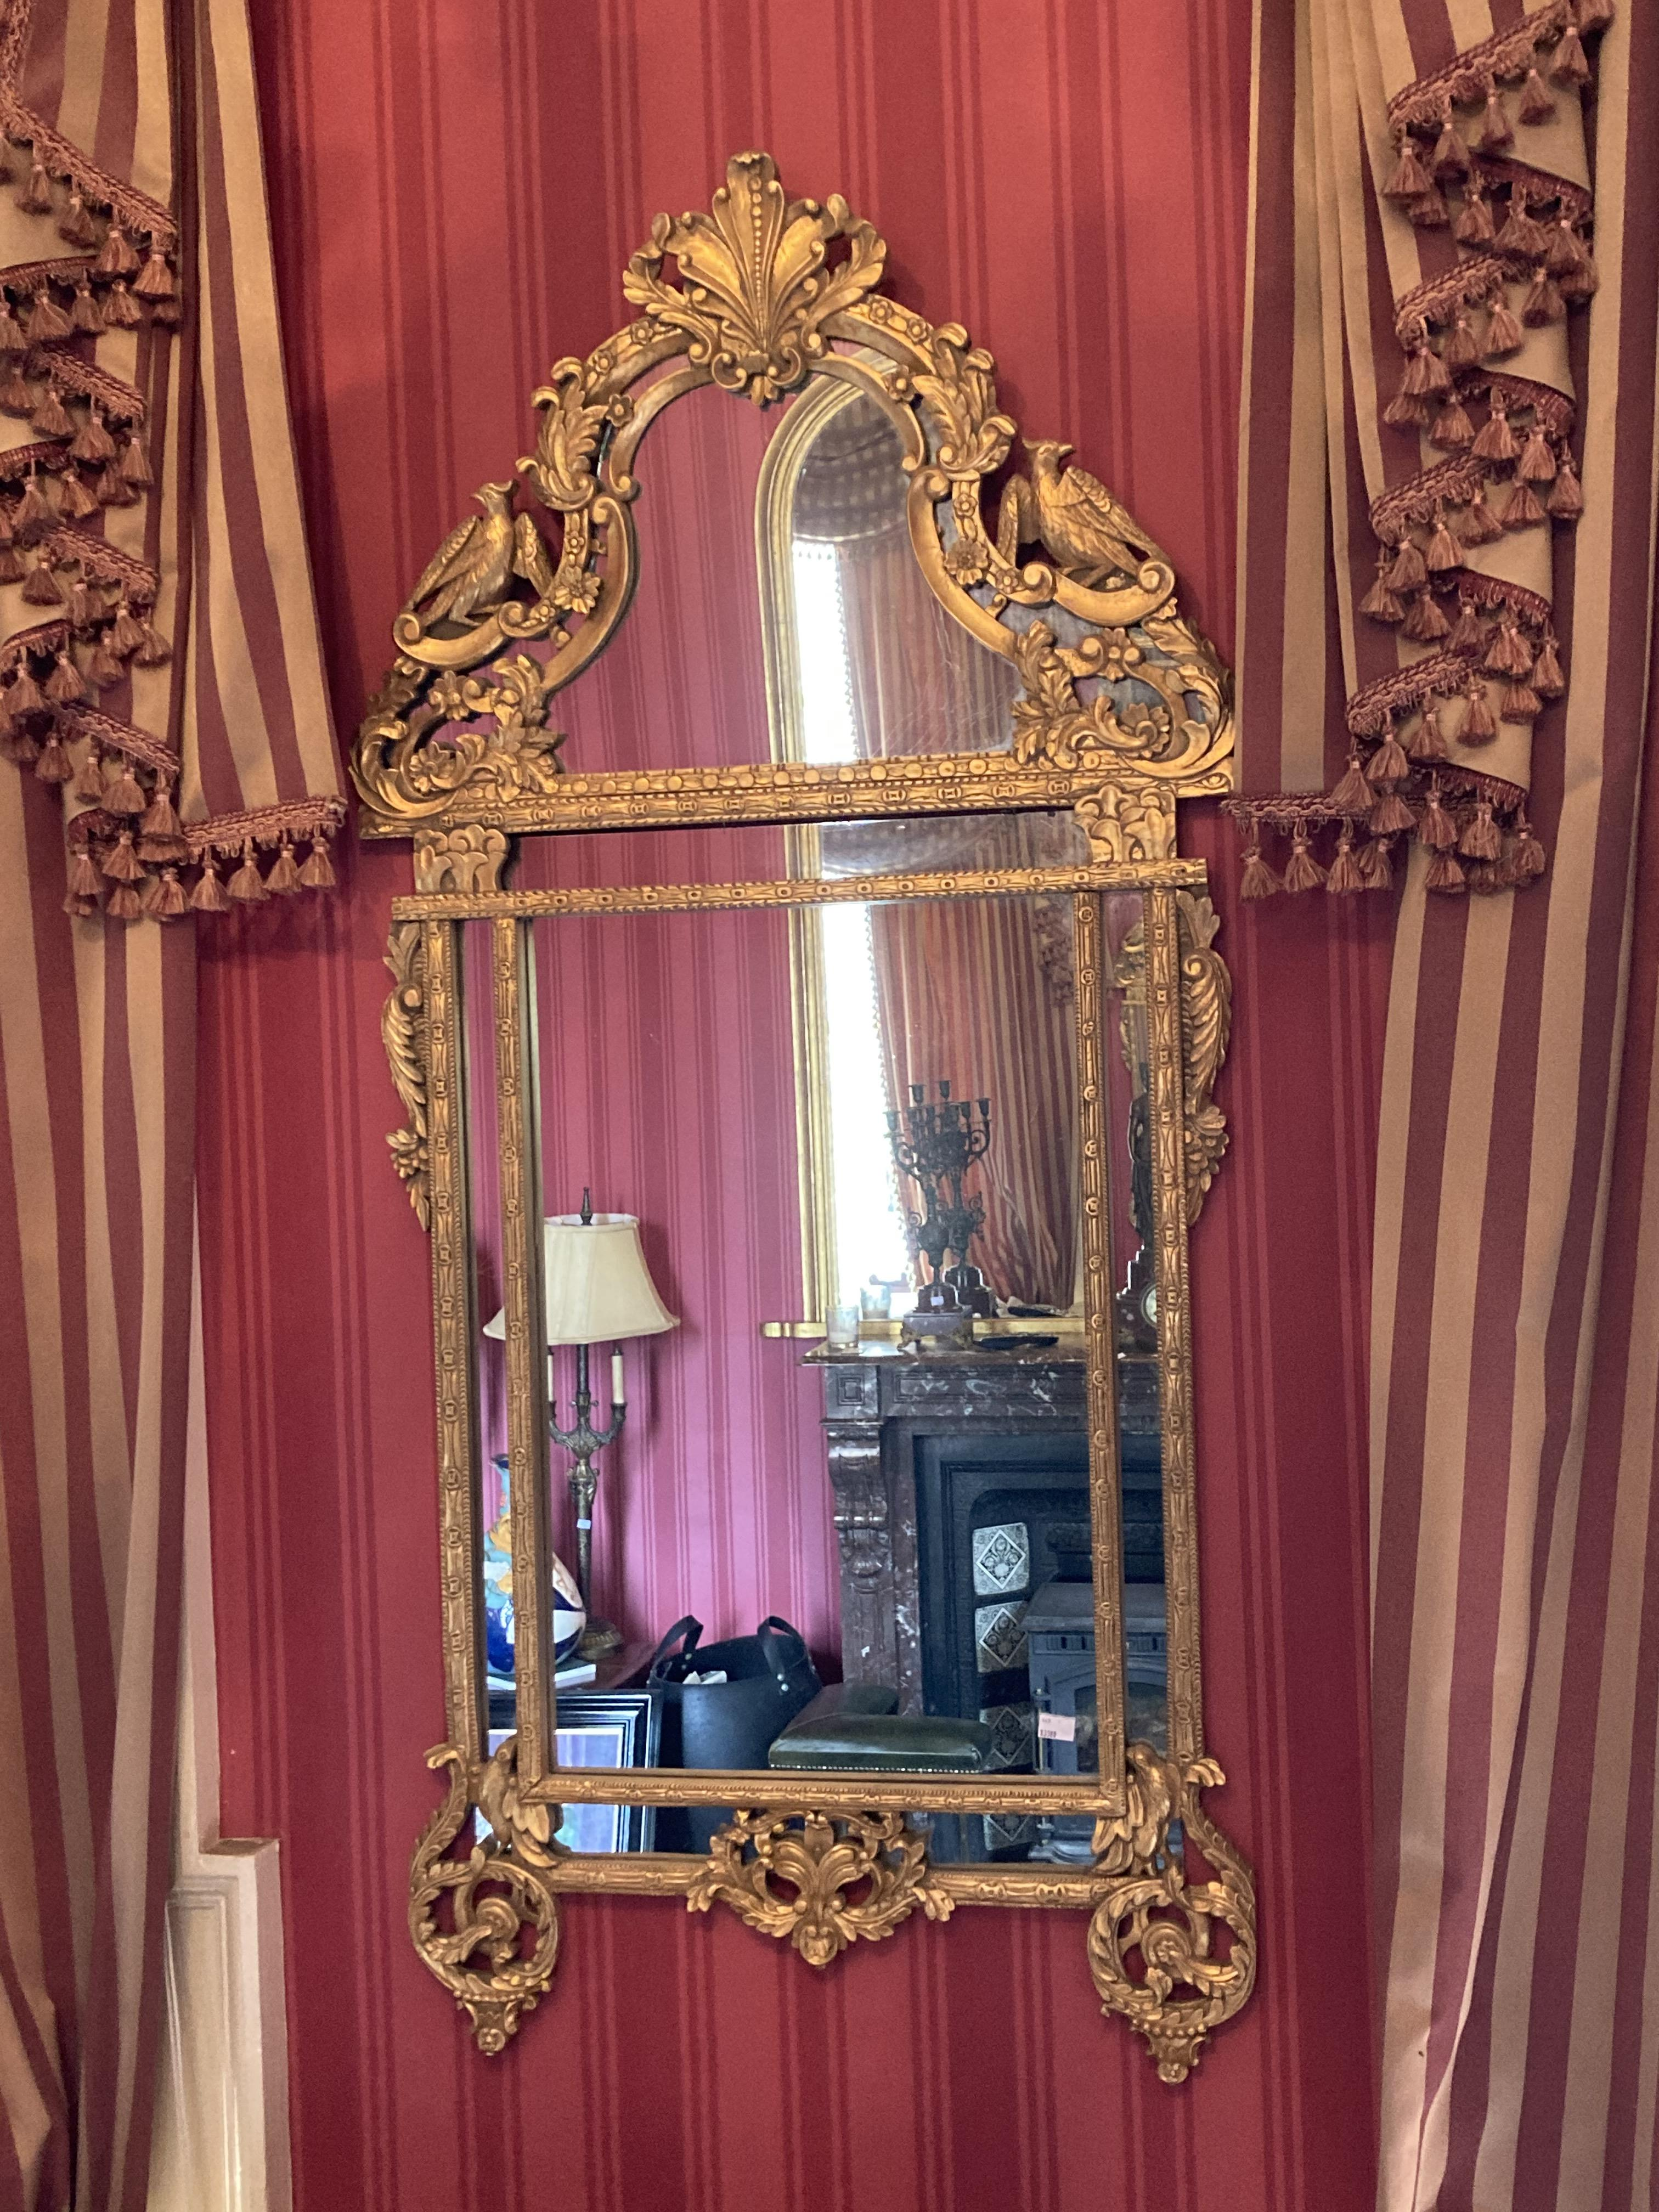 A Georgian style gilt Pier mirror, with arched top, shell decoration and Ho Ho birds, with leaf